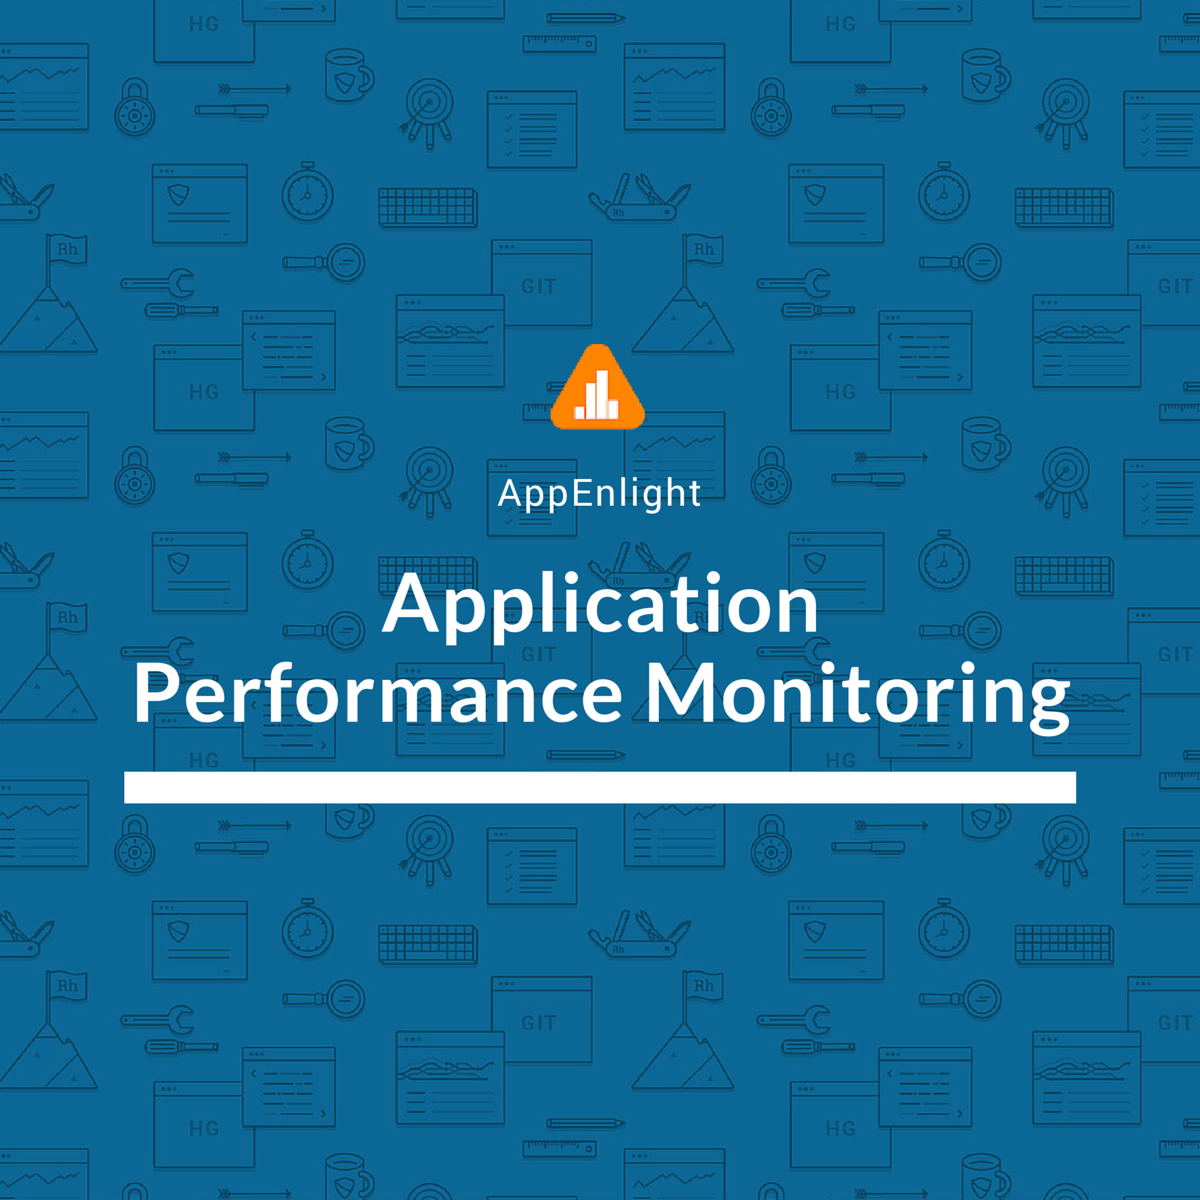 AppEnlight Application Performance Monitoring is Now Open Source